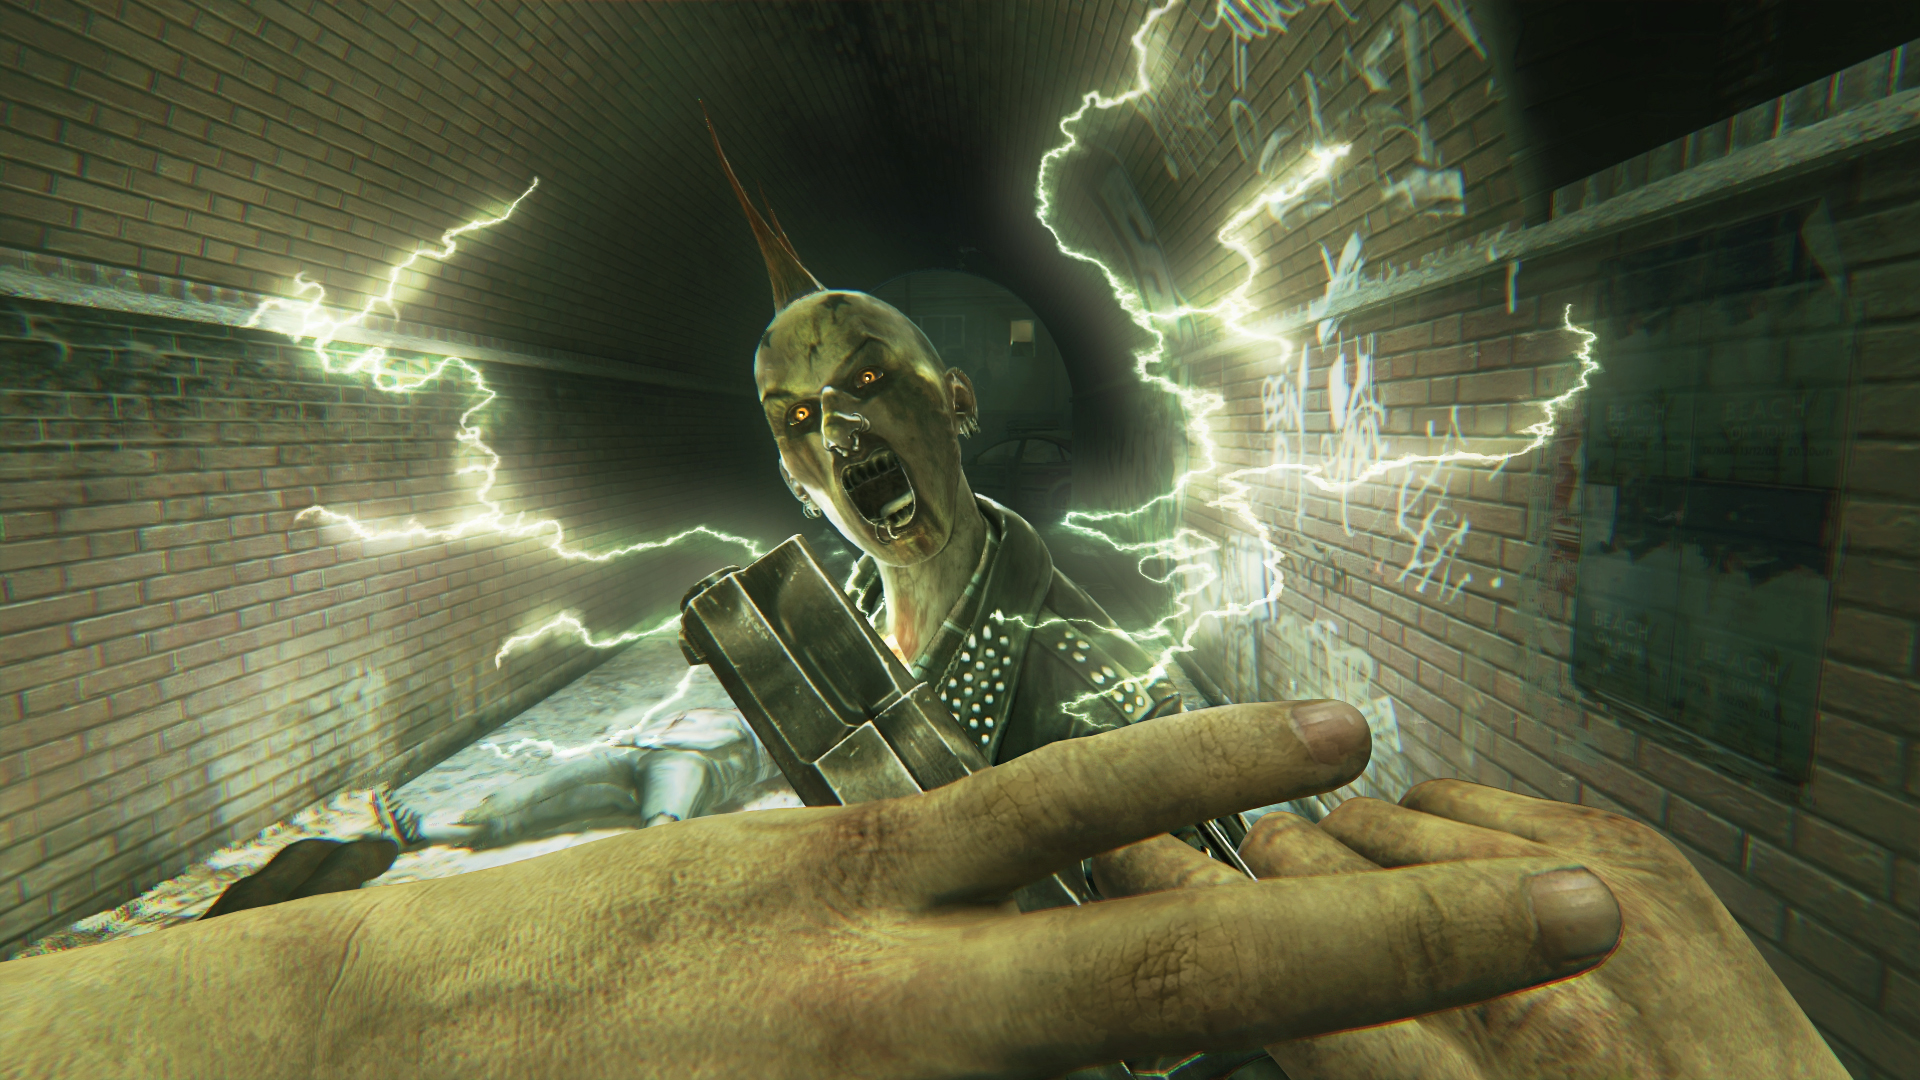 Zombi Invading PC, PS4 and Xbox One In August